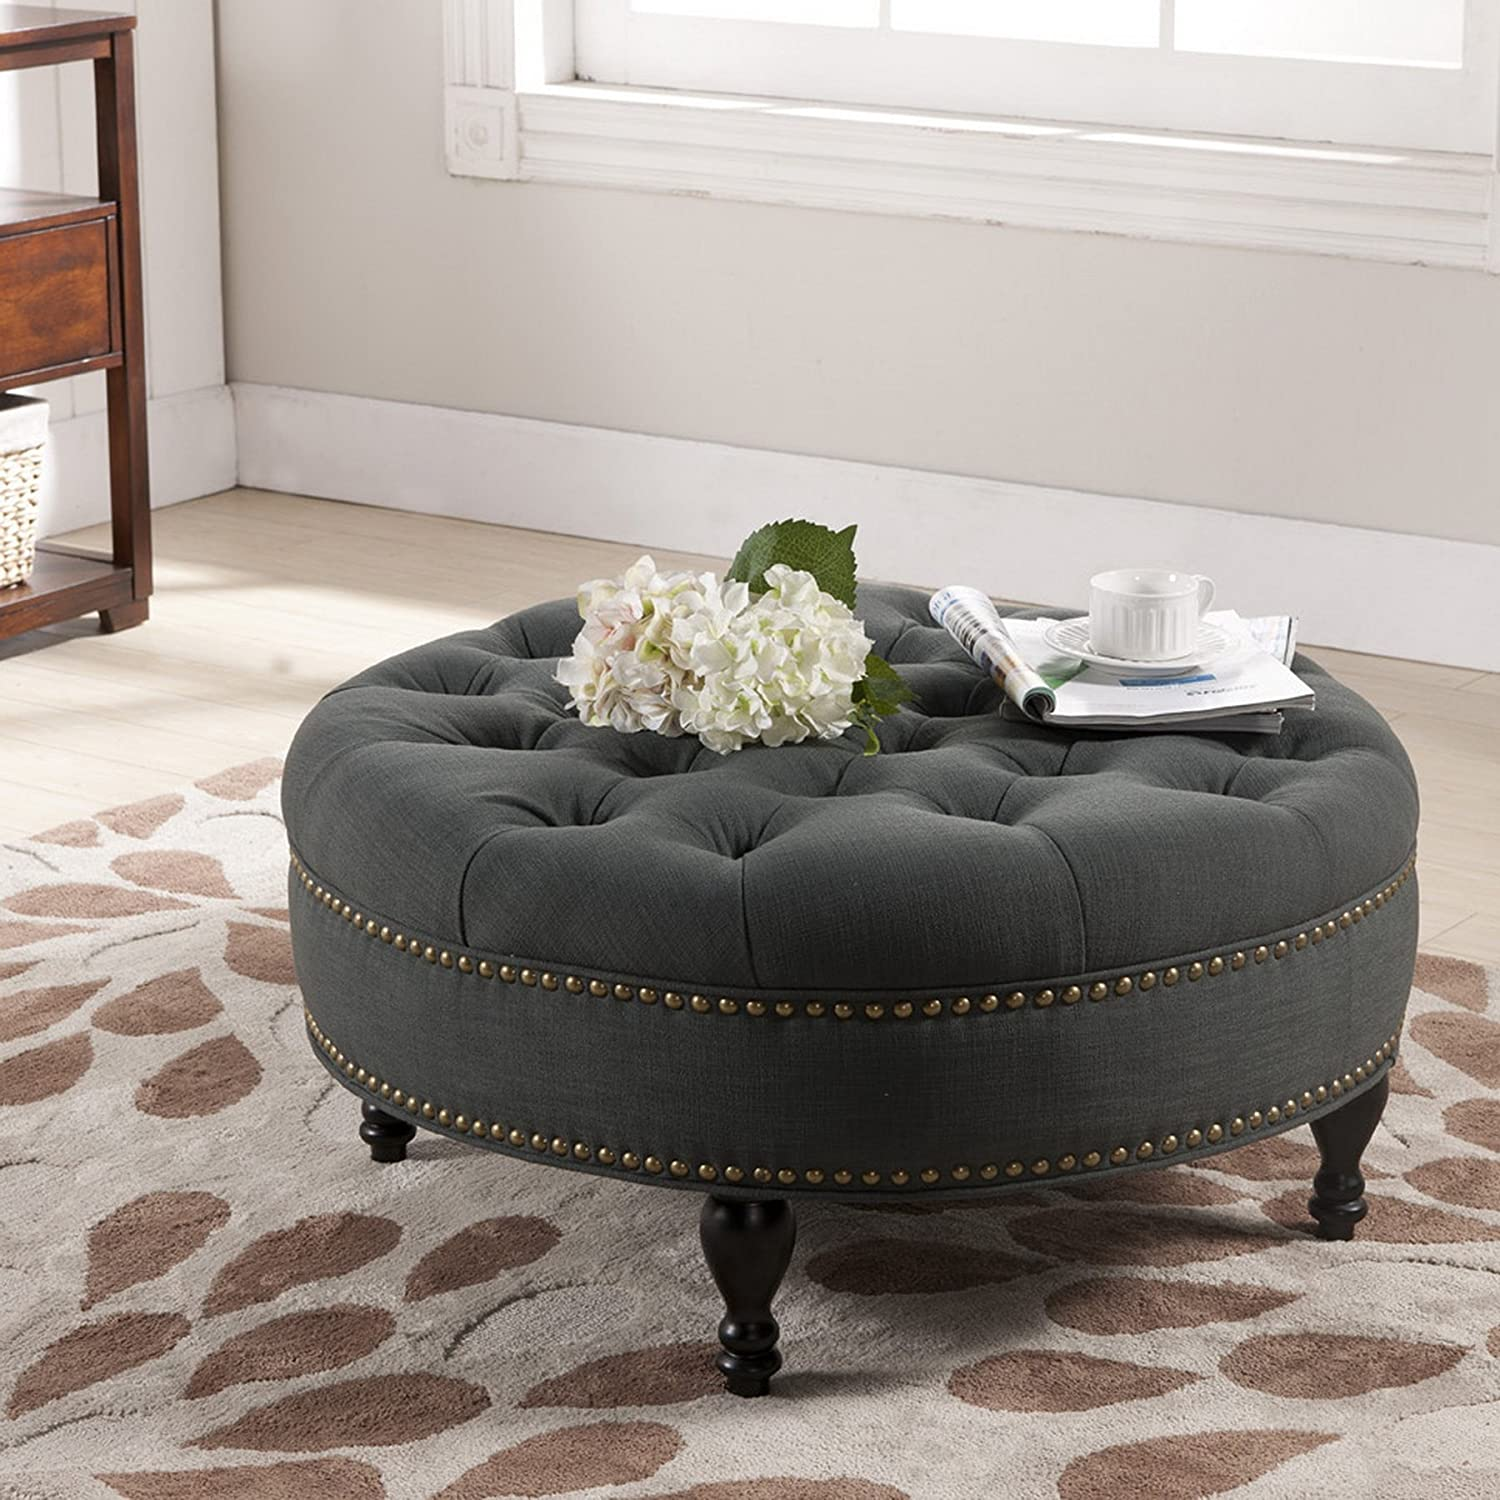 tufted gray hardwood sofa on diy living base furniture white ottoman floor upholstered black and tiles carpet dark room with table coffe in metal